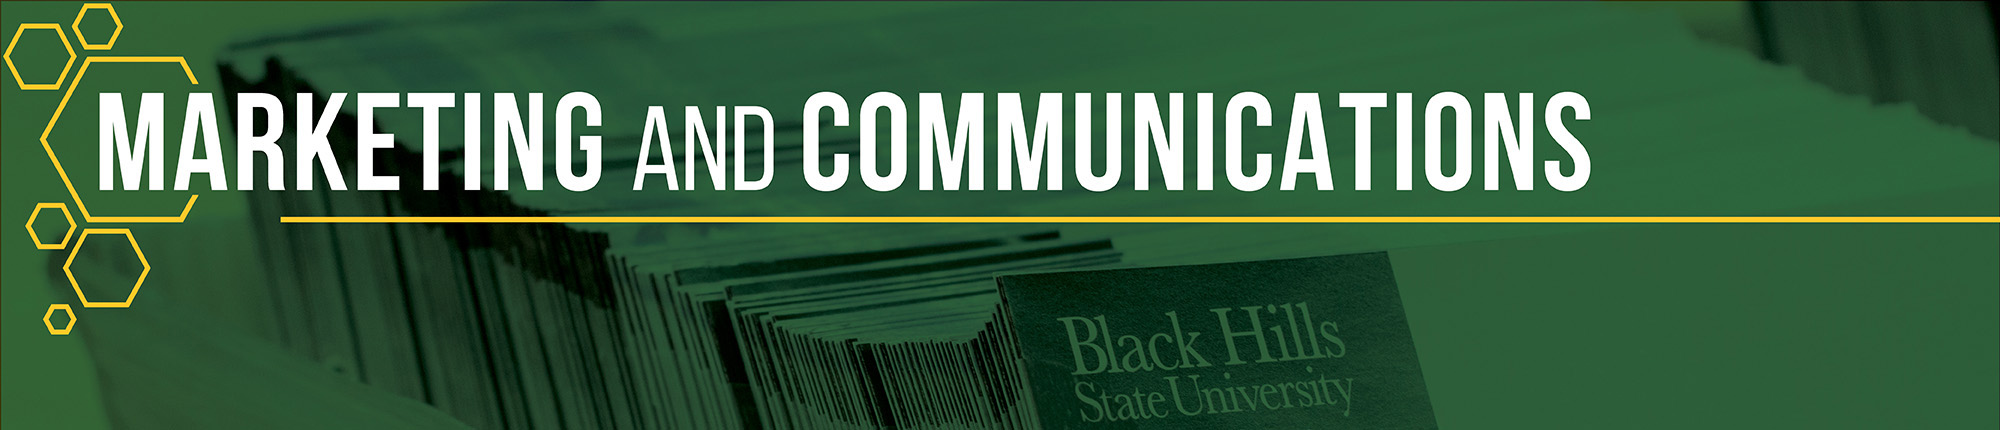 Marketing and Communication at BHSU